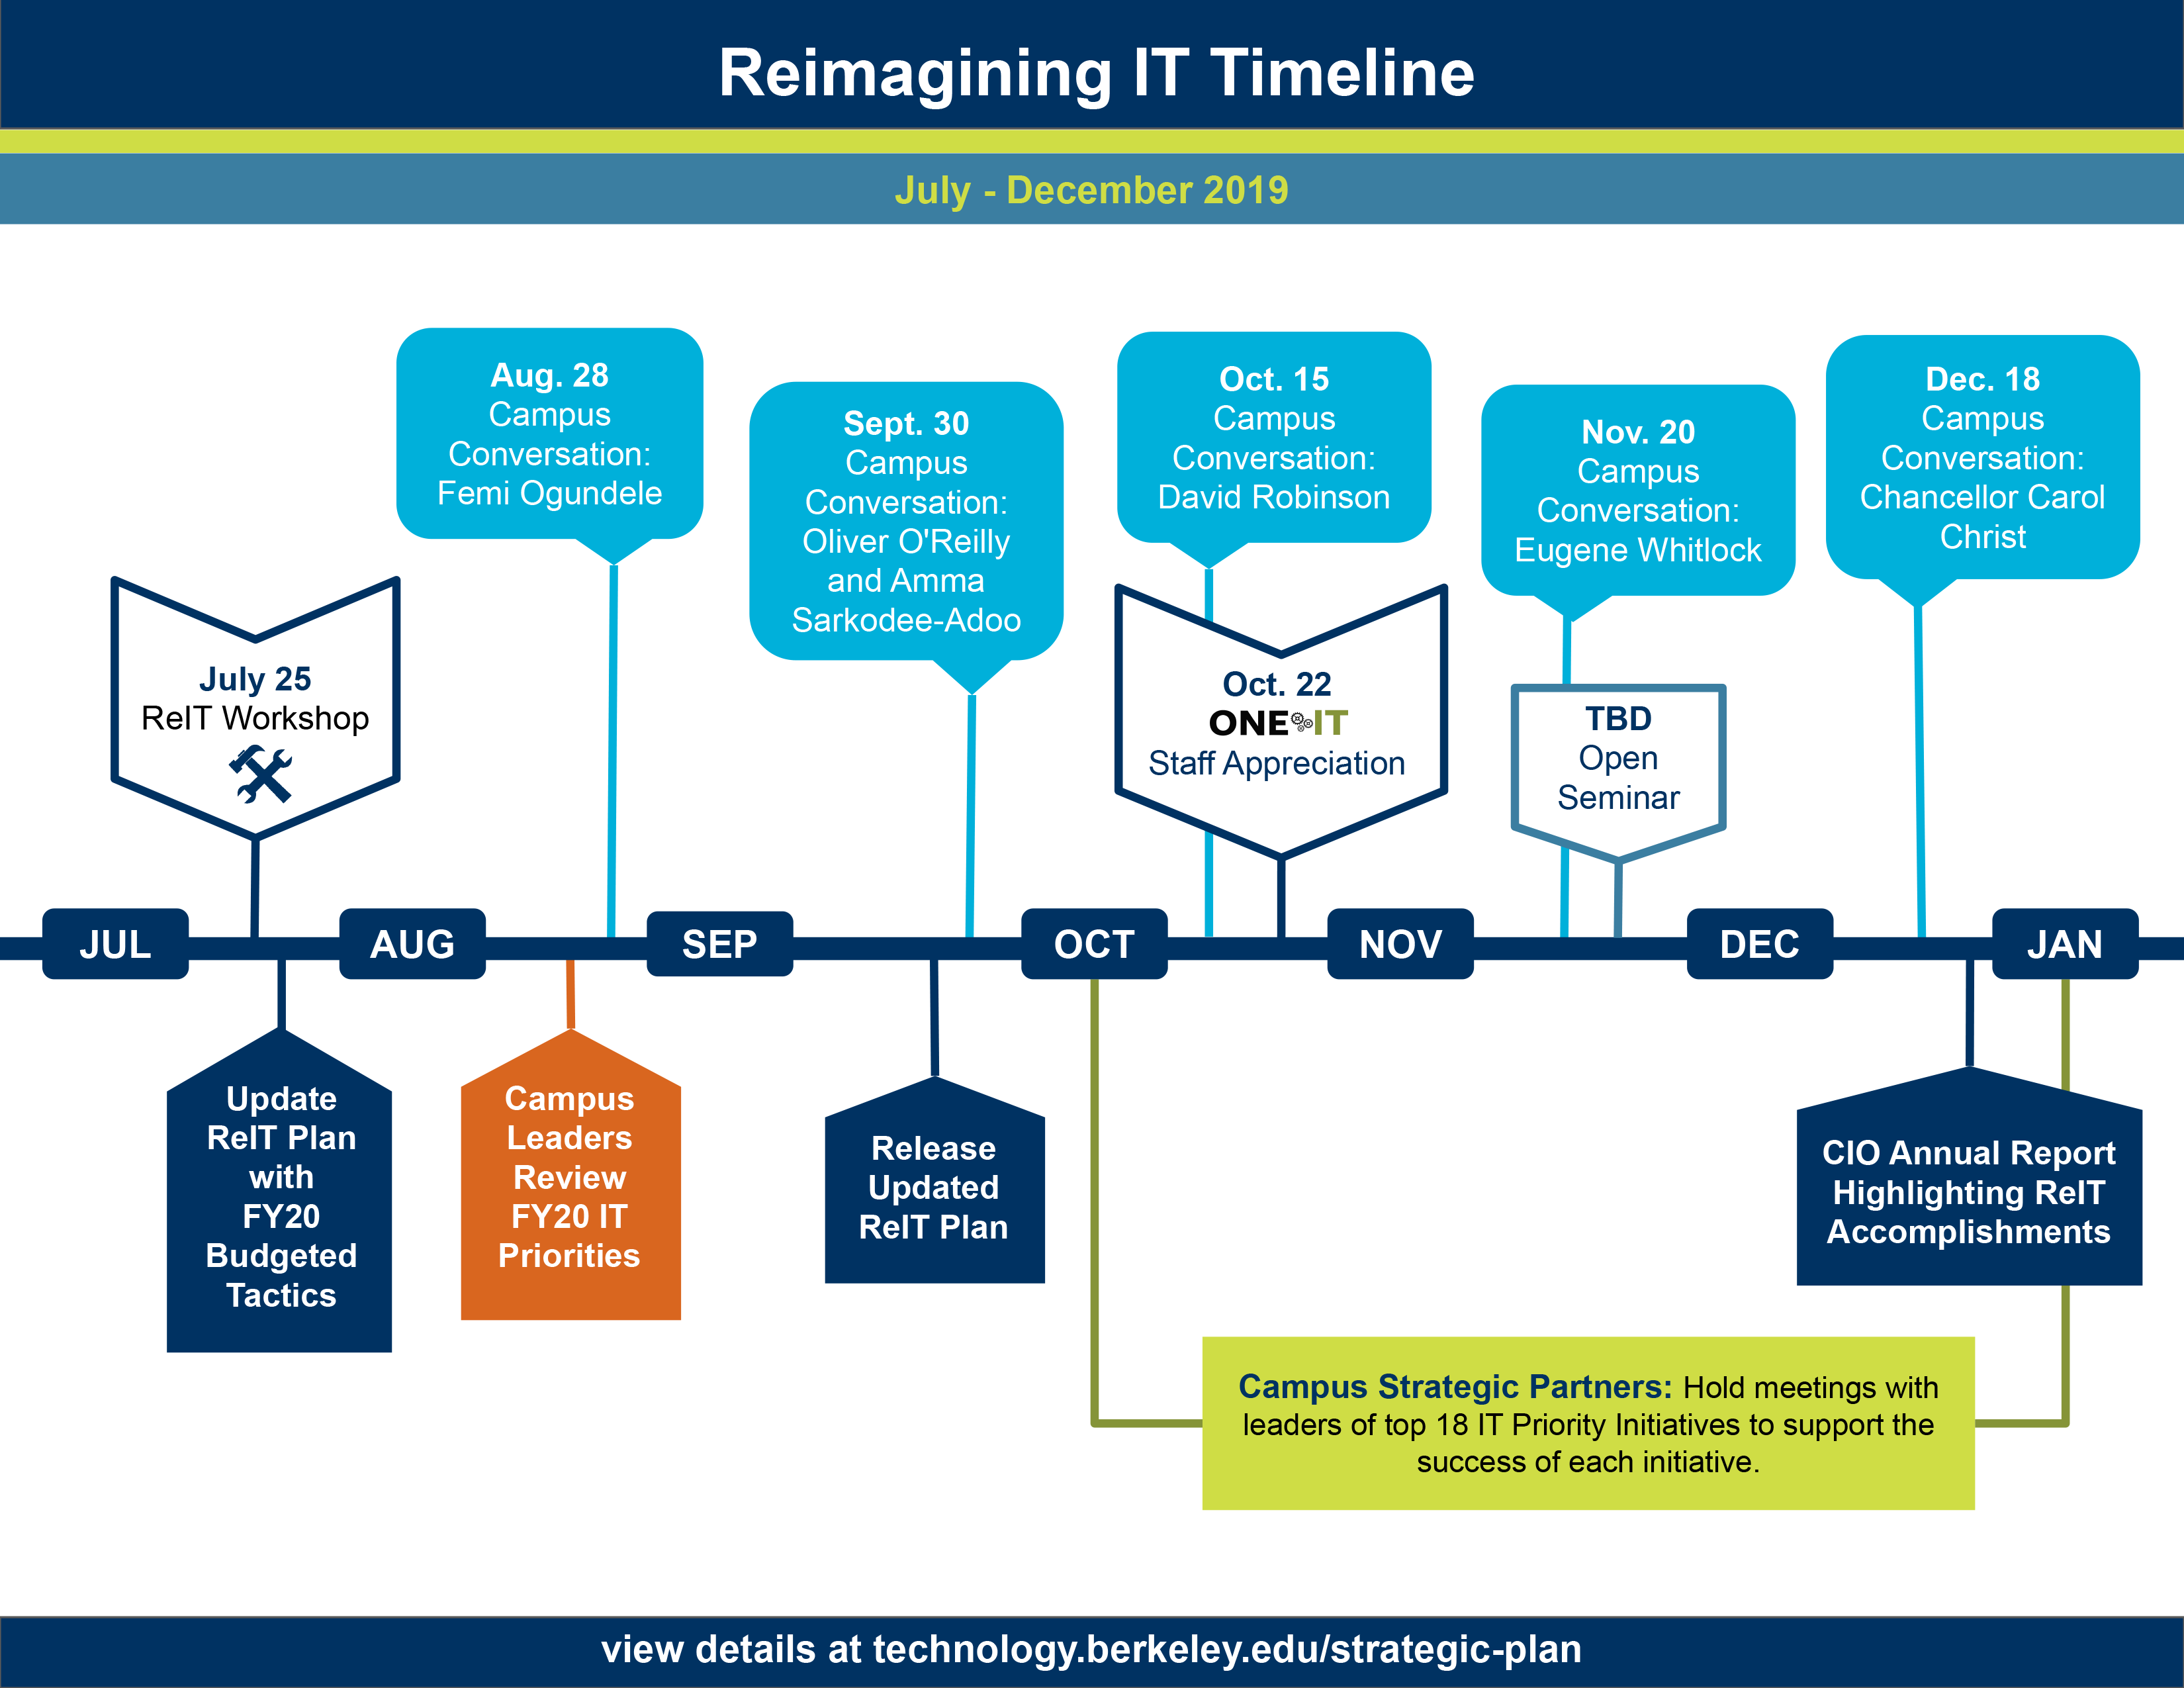 image of the ReIT timeline July to Dec 2019